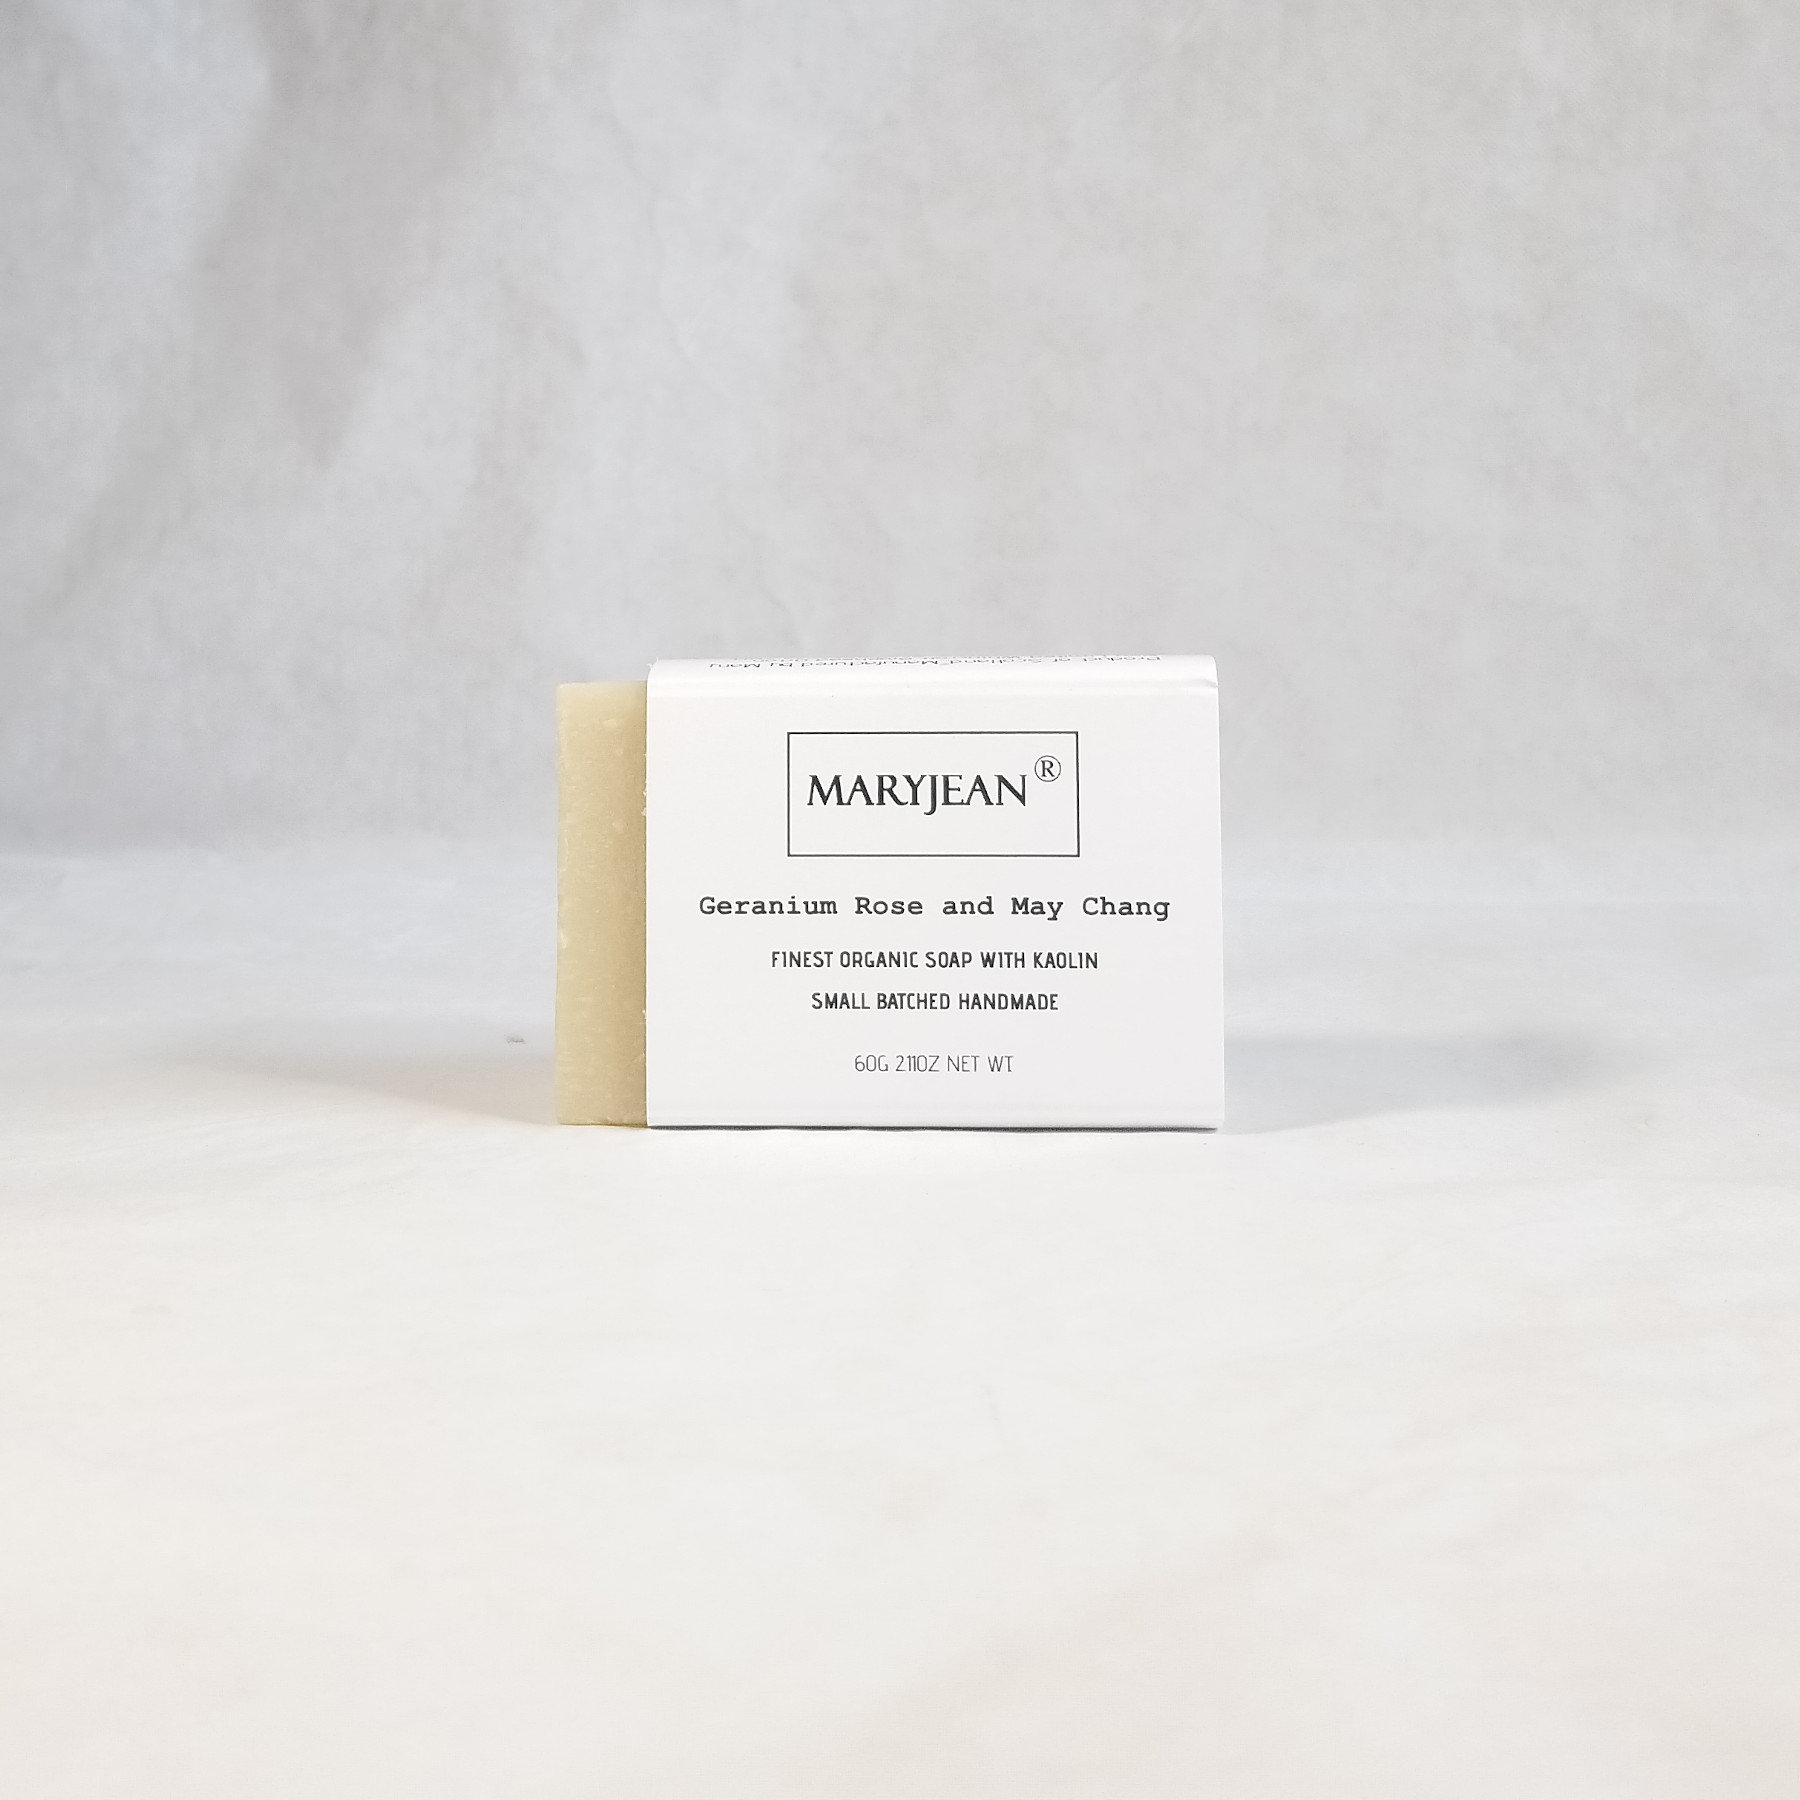 Travel size Organic Scottish Geranium May Chang Gentlemen's Shaving Soap Handmade with Kaolin Enhance your skin health with this wet shaving Scottish natural shaving soap bar for sensitive and all skin types with moisturising aromatherapy Olive oil and Kaolin clay